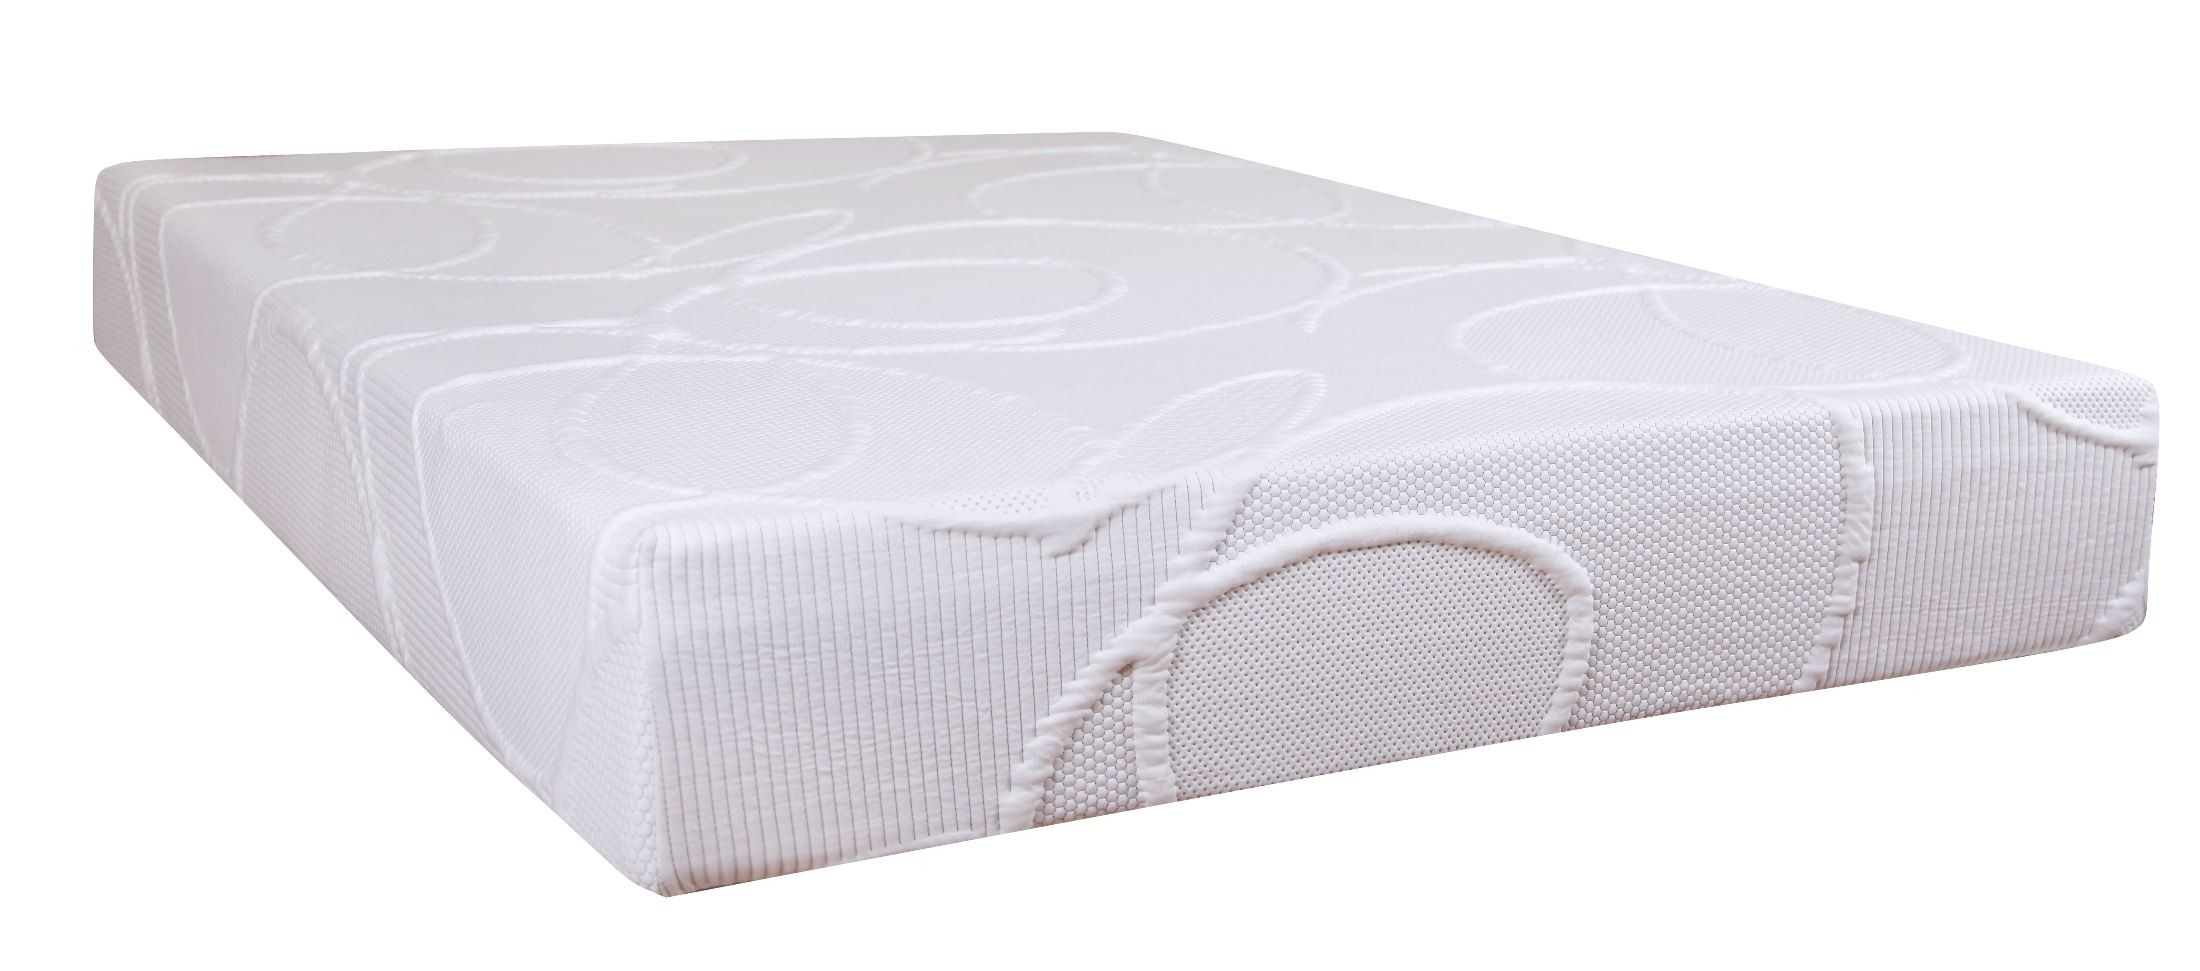 Polaris 10 memory foam xl twin size mattress from klaussner polaristxtmat coleman furniture Mattress twin size